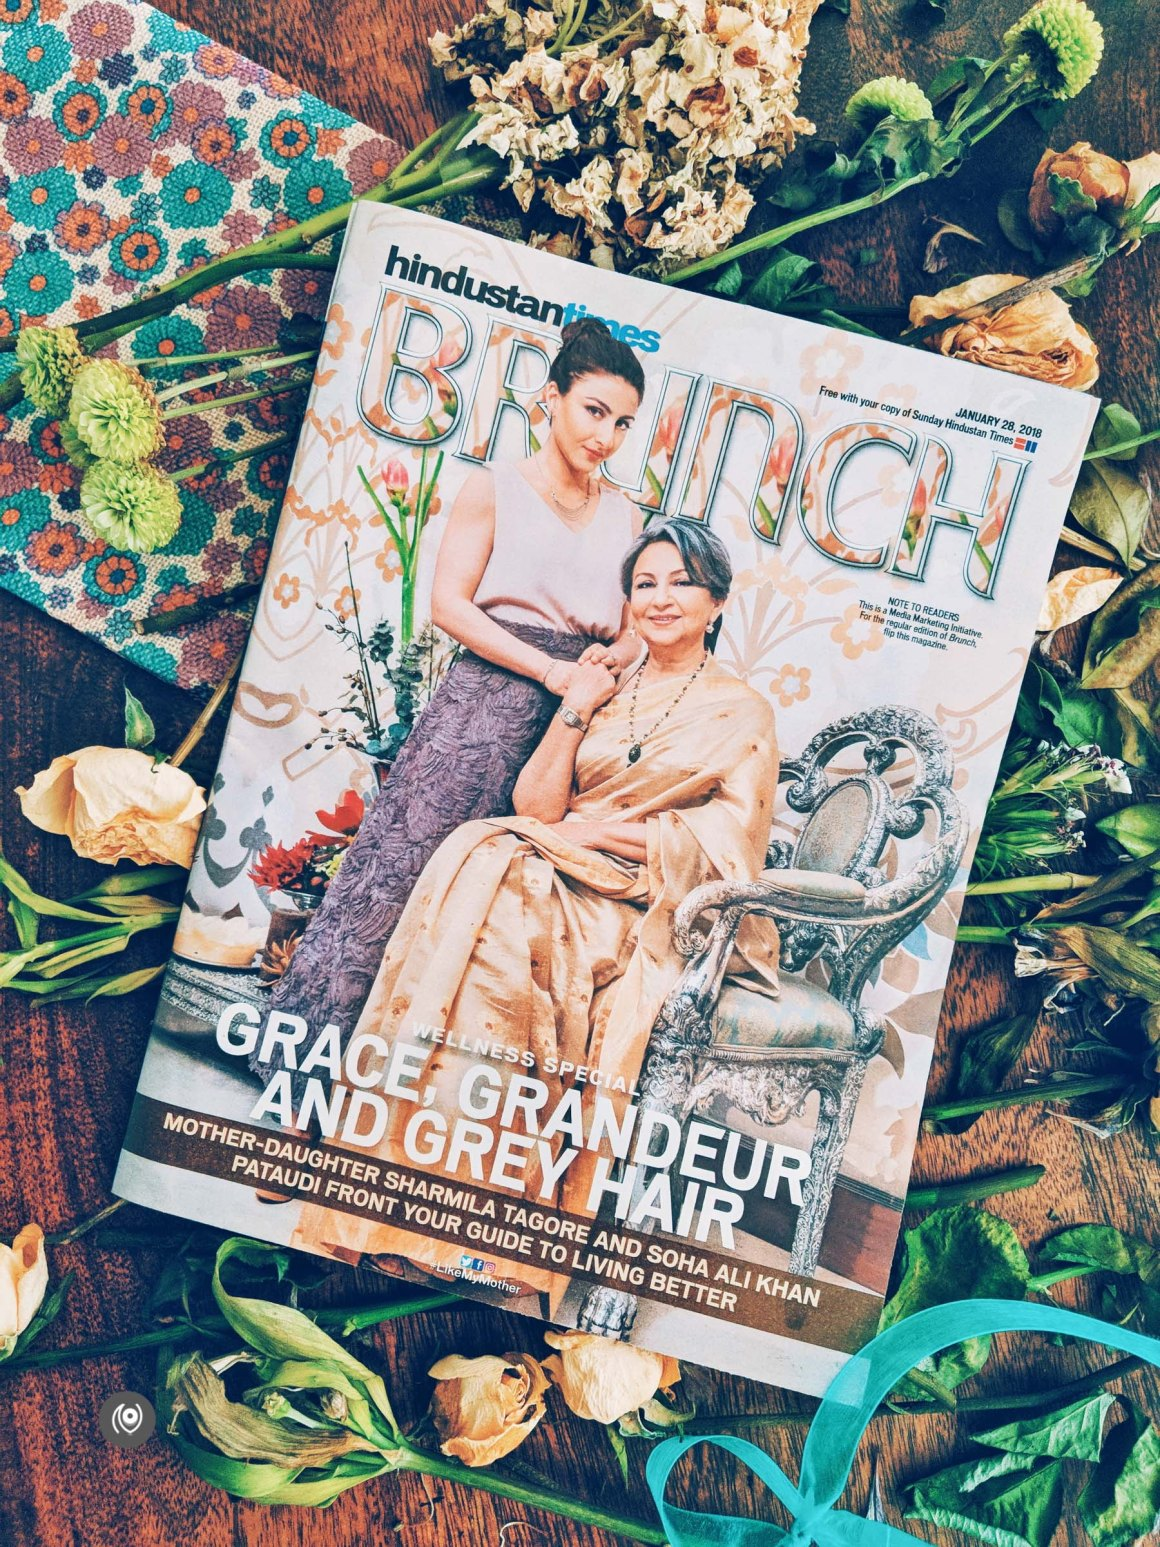 Naina.co, Naina Redhu, Hindustan Times, HTBrunch, Jamal Shaikh, Samreen, Soha Ali Khan Pataudi, sakpataudi, Sharmila Tagore, Cover Shoot, Professional Photographer, Cover Photographer, Bollywood, Actors, LikeMyMother, Grace, Grandeur, Grey Hair, Wellness, Media Marketing, HMIndia, On The Cover, Her Mother's Daughter, Health, Magazine, EyesForLifestyle, Lifestyle Photographer, Luxury Photographer, Lifestyle Blogger, Luxury Blogger, Lifestyle Photographer India, Luxury Photographer India, Lifestyle Blogger India, Luxury Blogger India, Influencer, Lifestyle Influencer, Luxury Influencer, Lifestyle Influencer India, Luxury Influencer India, Photography Influencer, Photography Influencer India